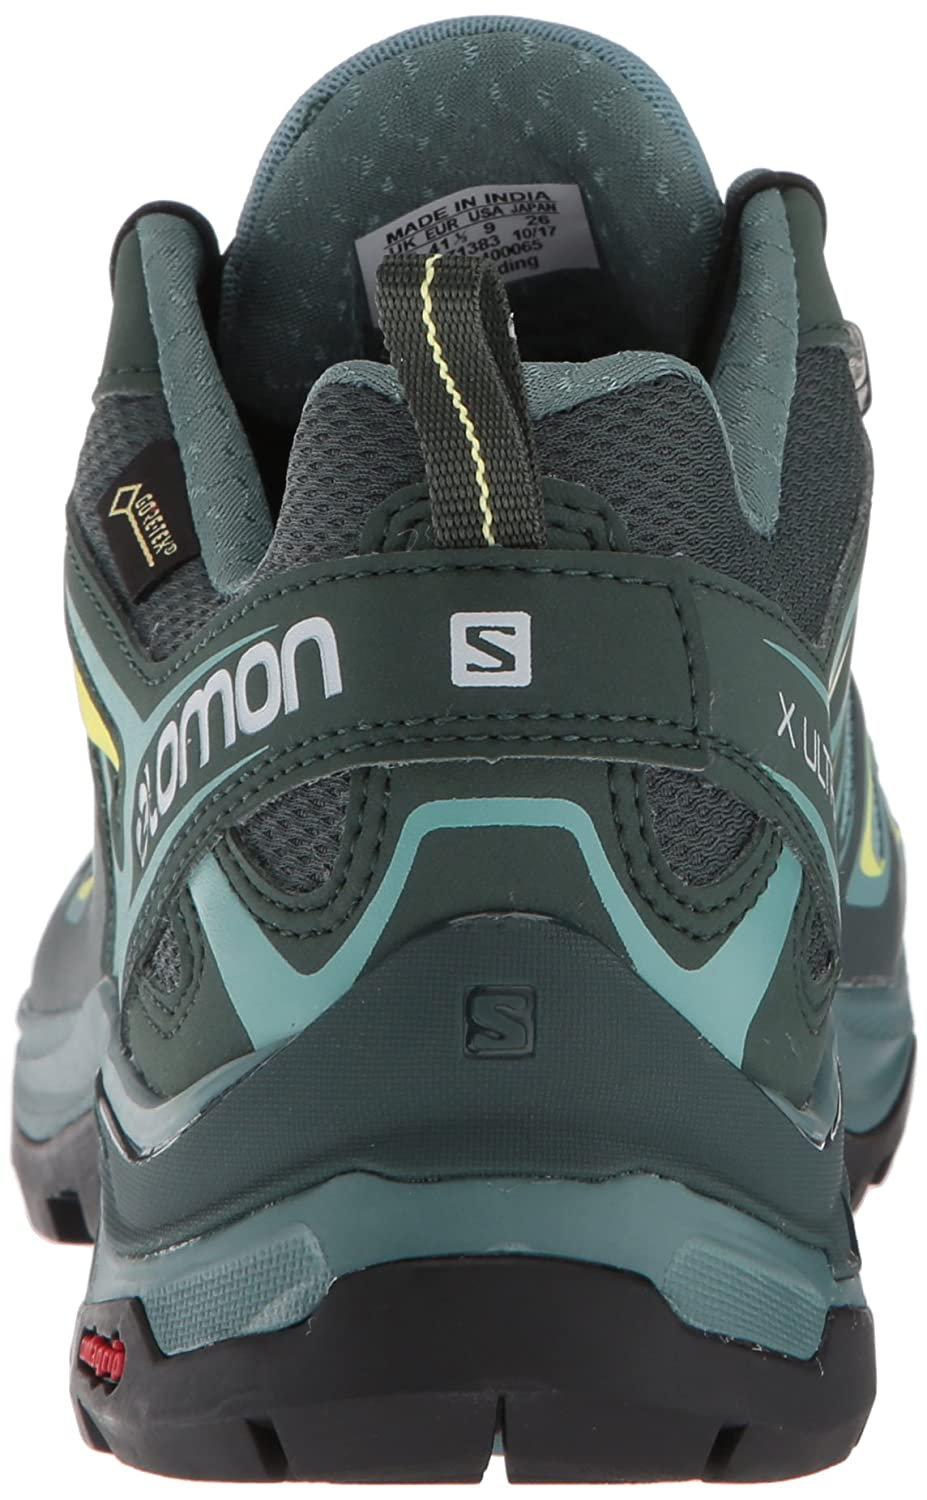 Salomon Women's X Ultra 3 GTX M Hiking Shoes B071LJSBT8 9 M GTX US|Artic 7668fd